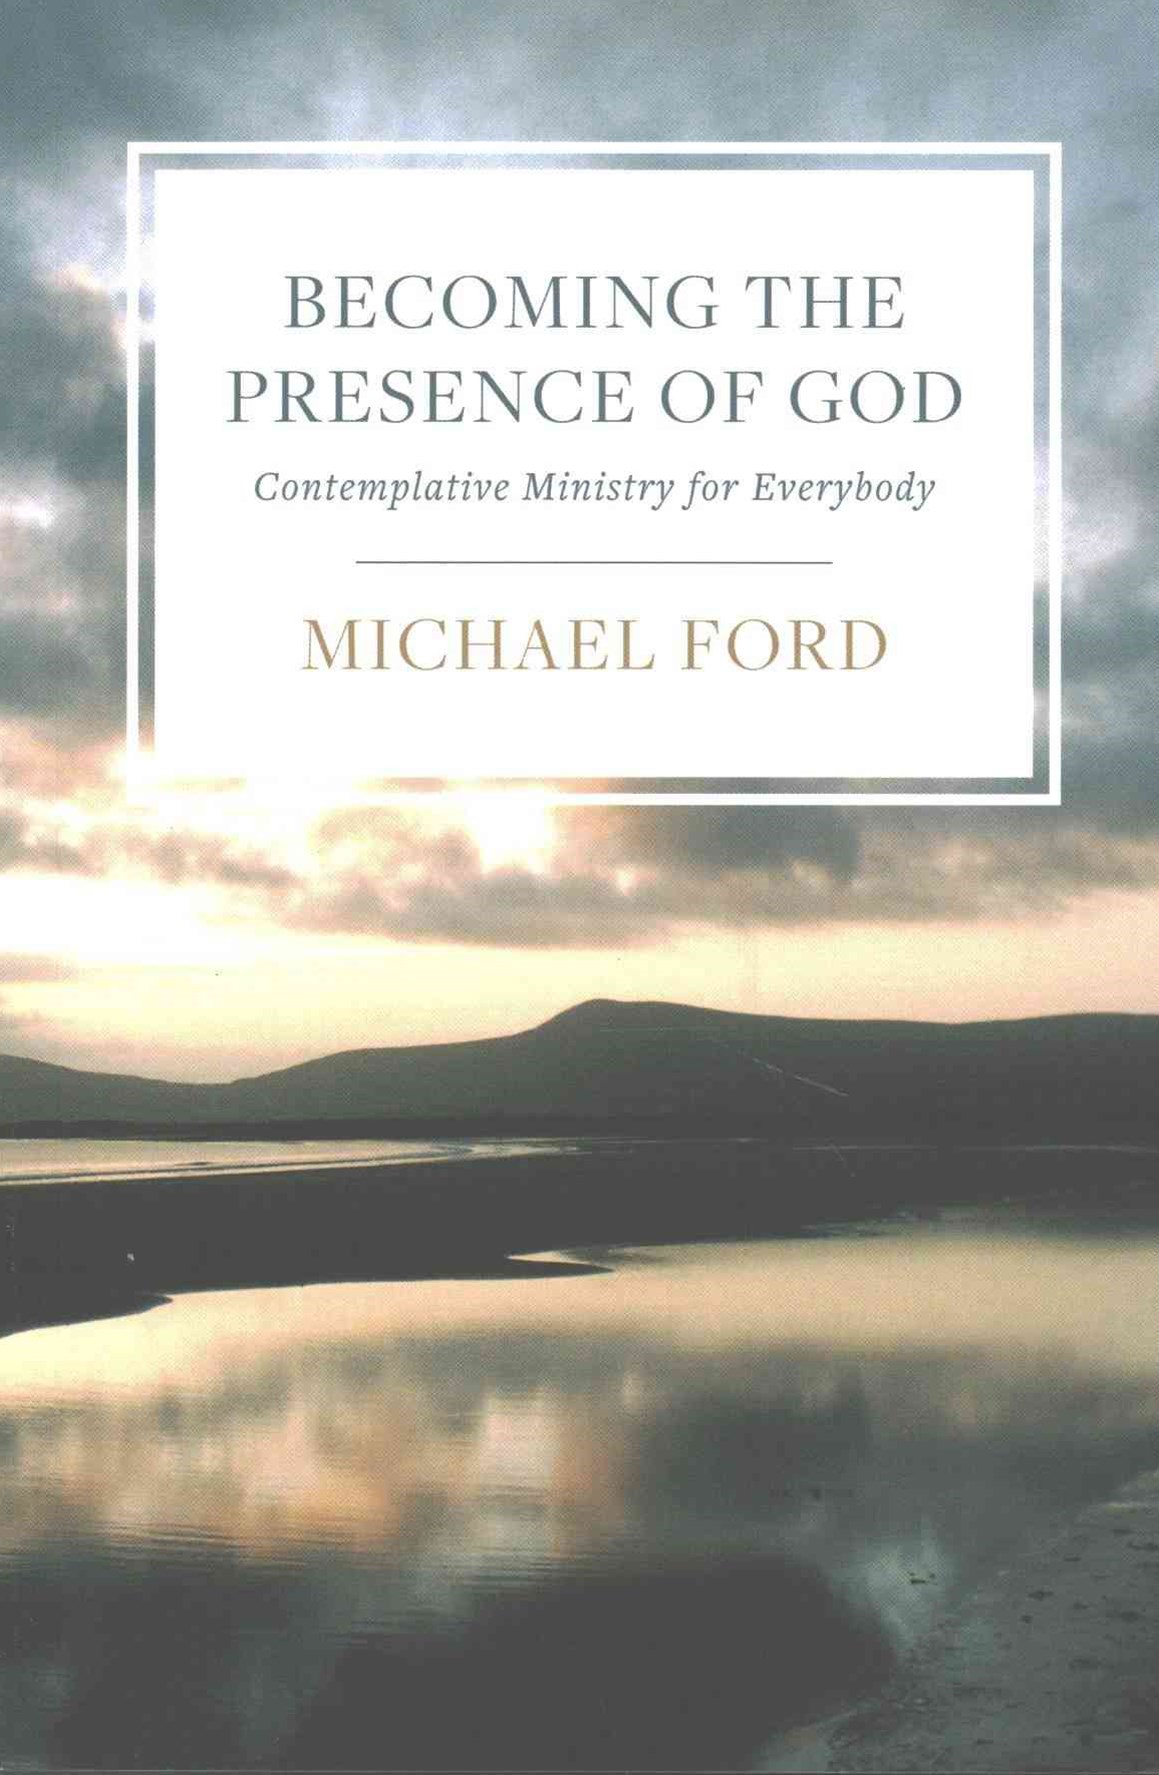 Becoming the Presence of God